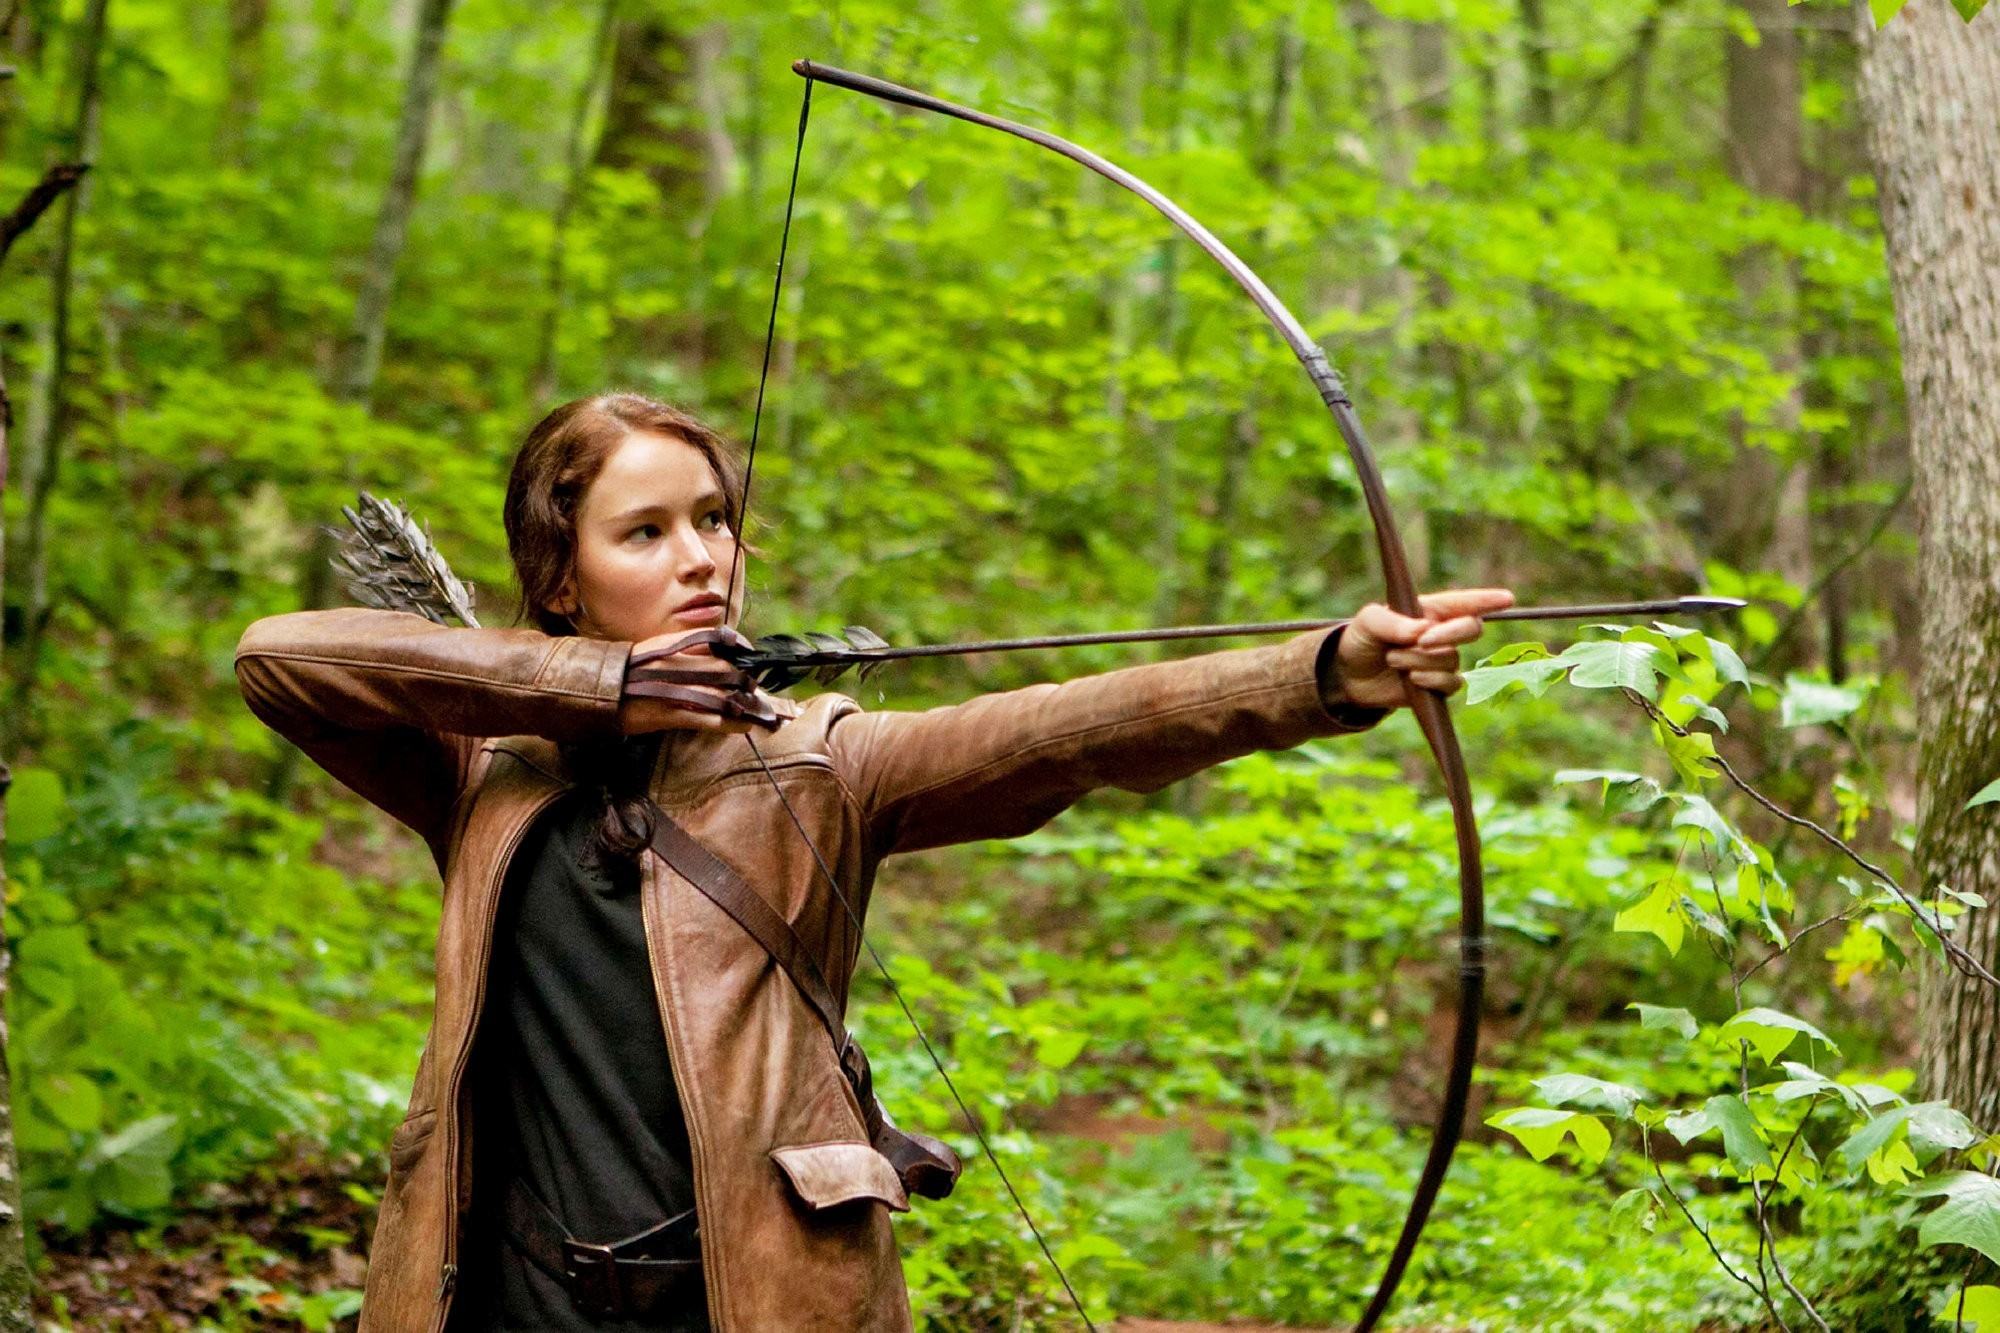 Top 10 Action Movies starring Women